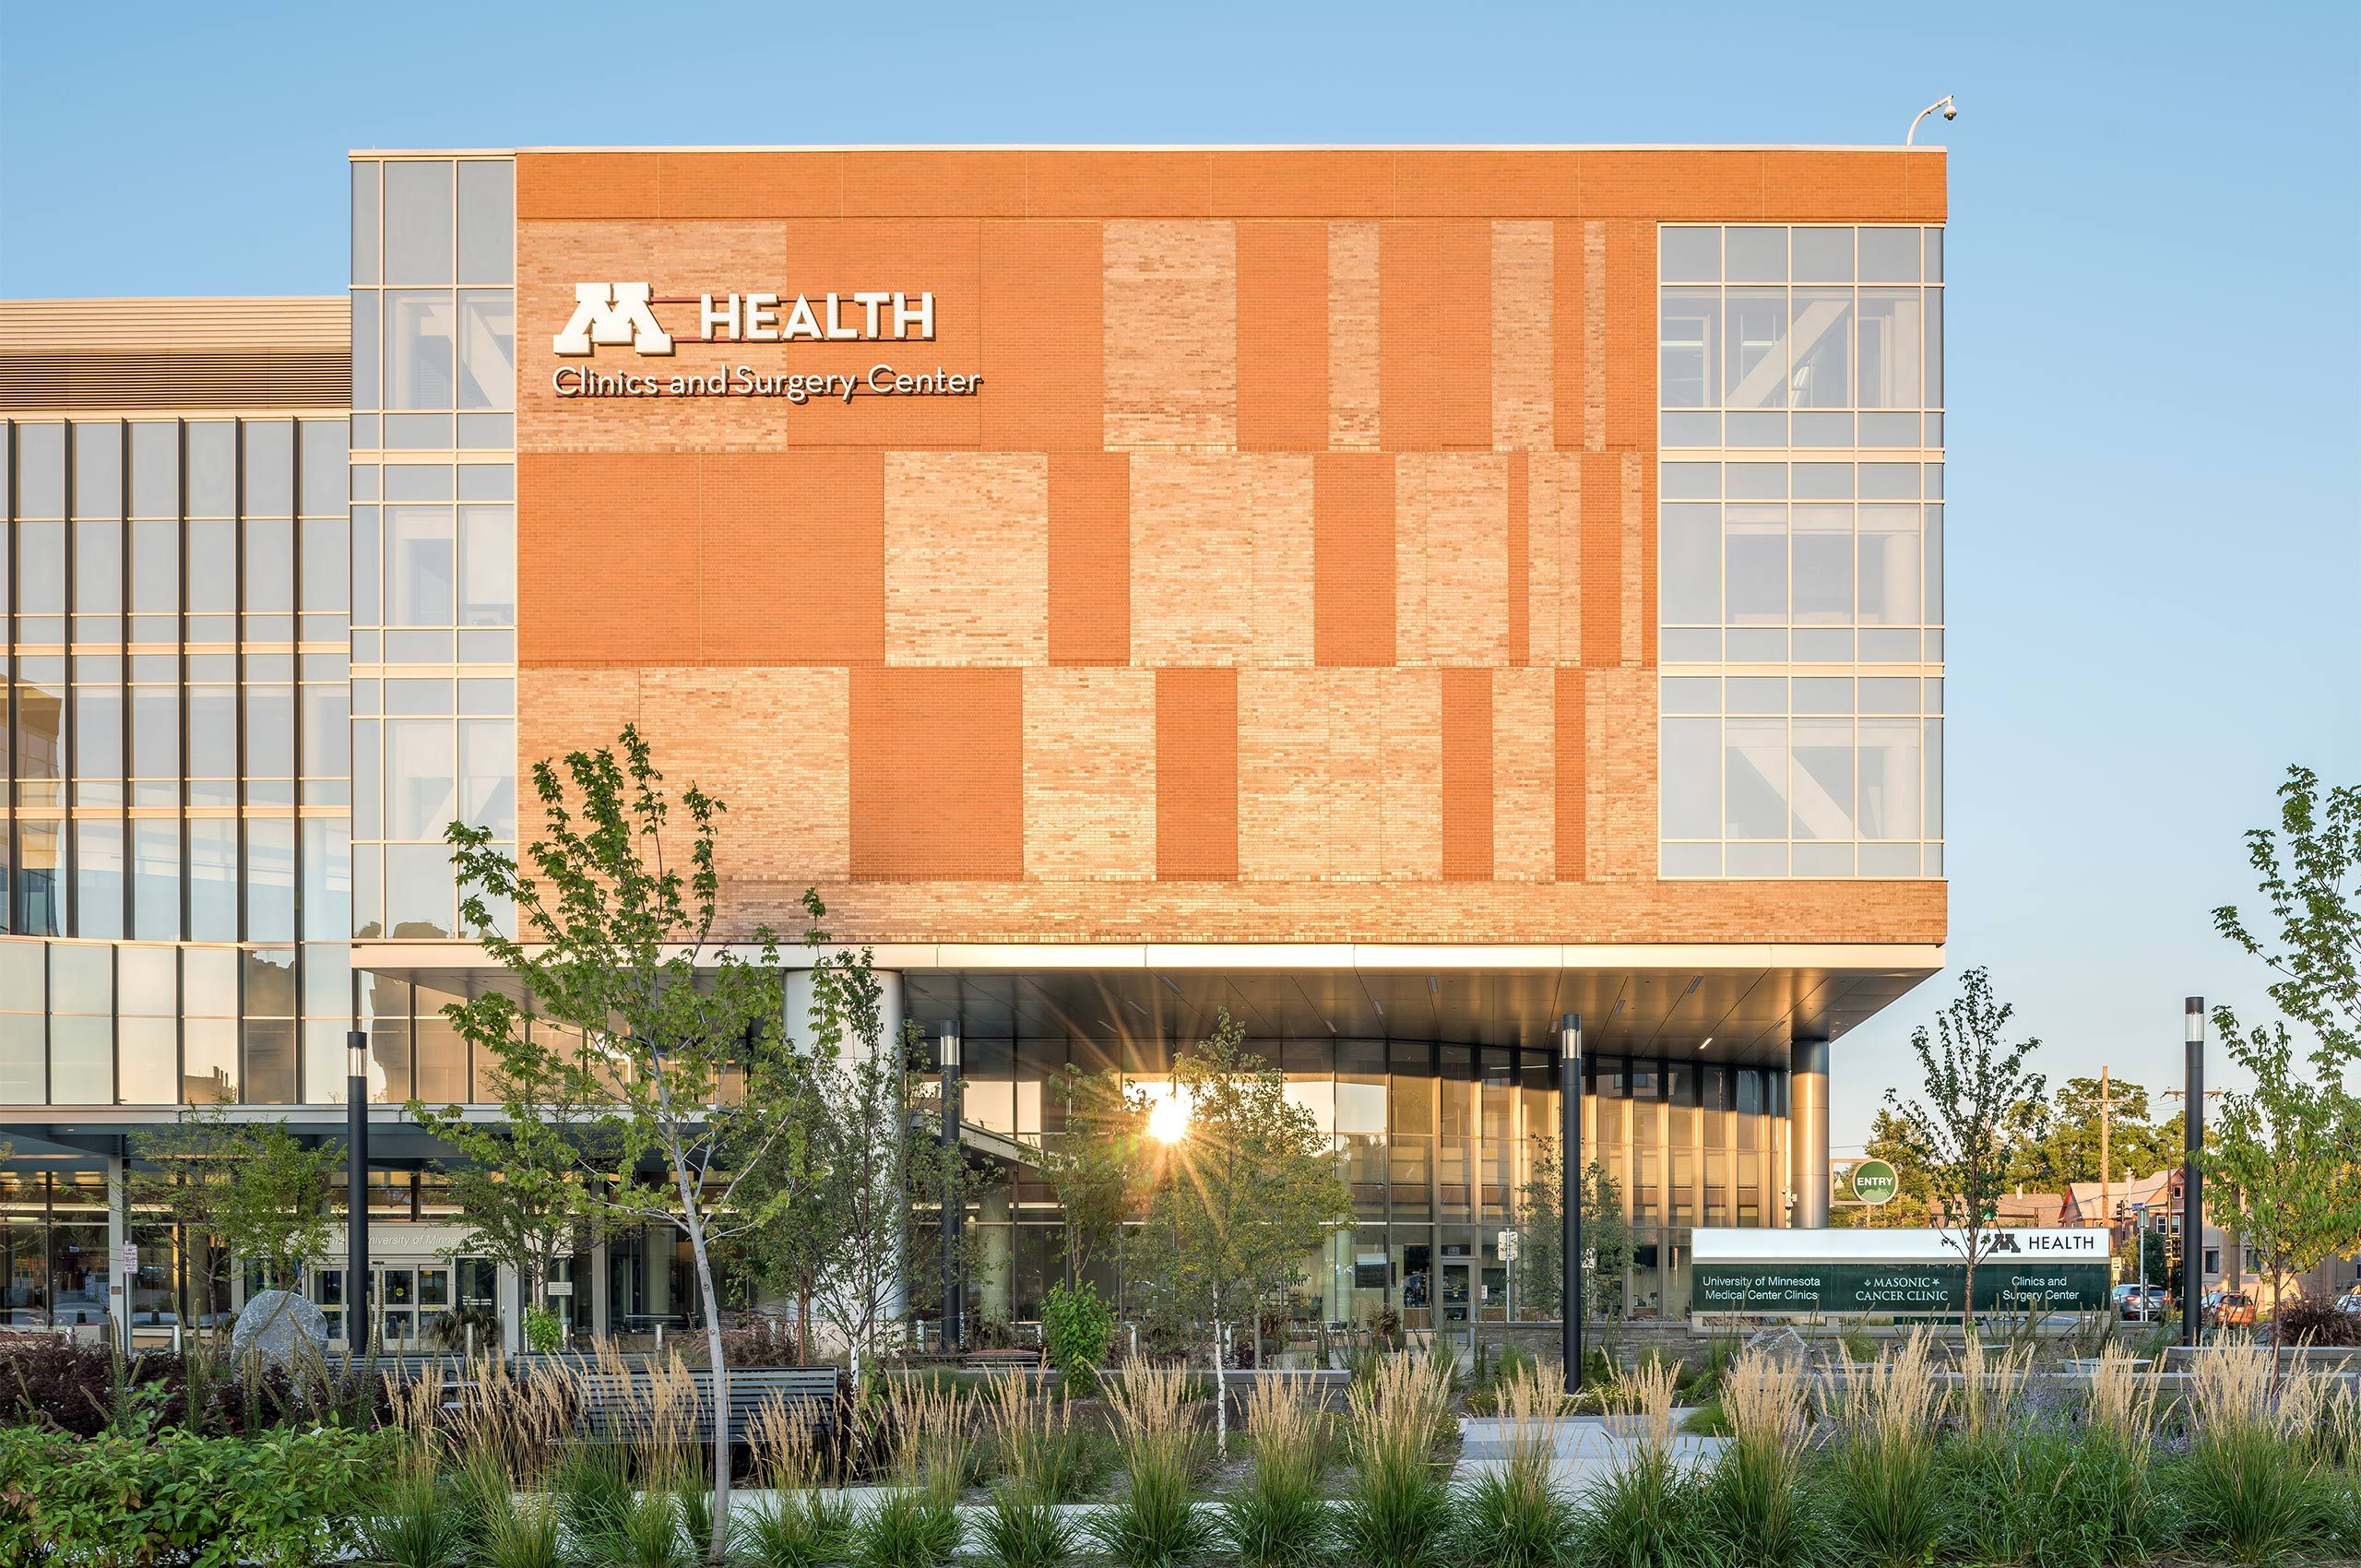 UNIVERSITY OF MINNESOTA HEALTH CLINICS AND SURGERY CENTER